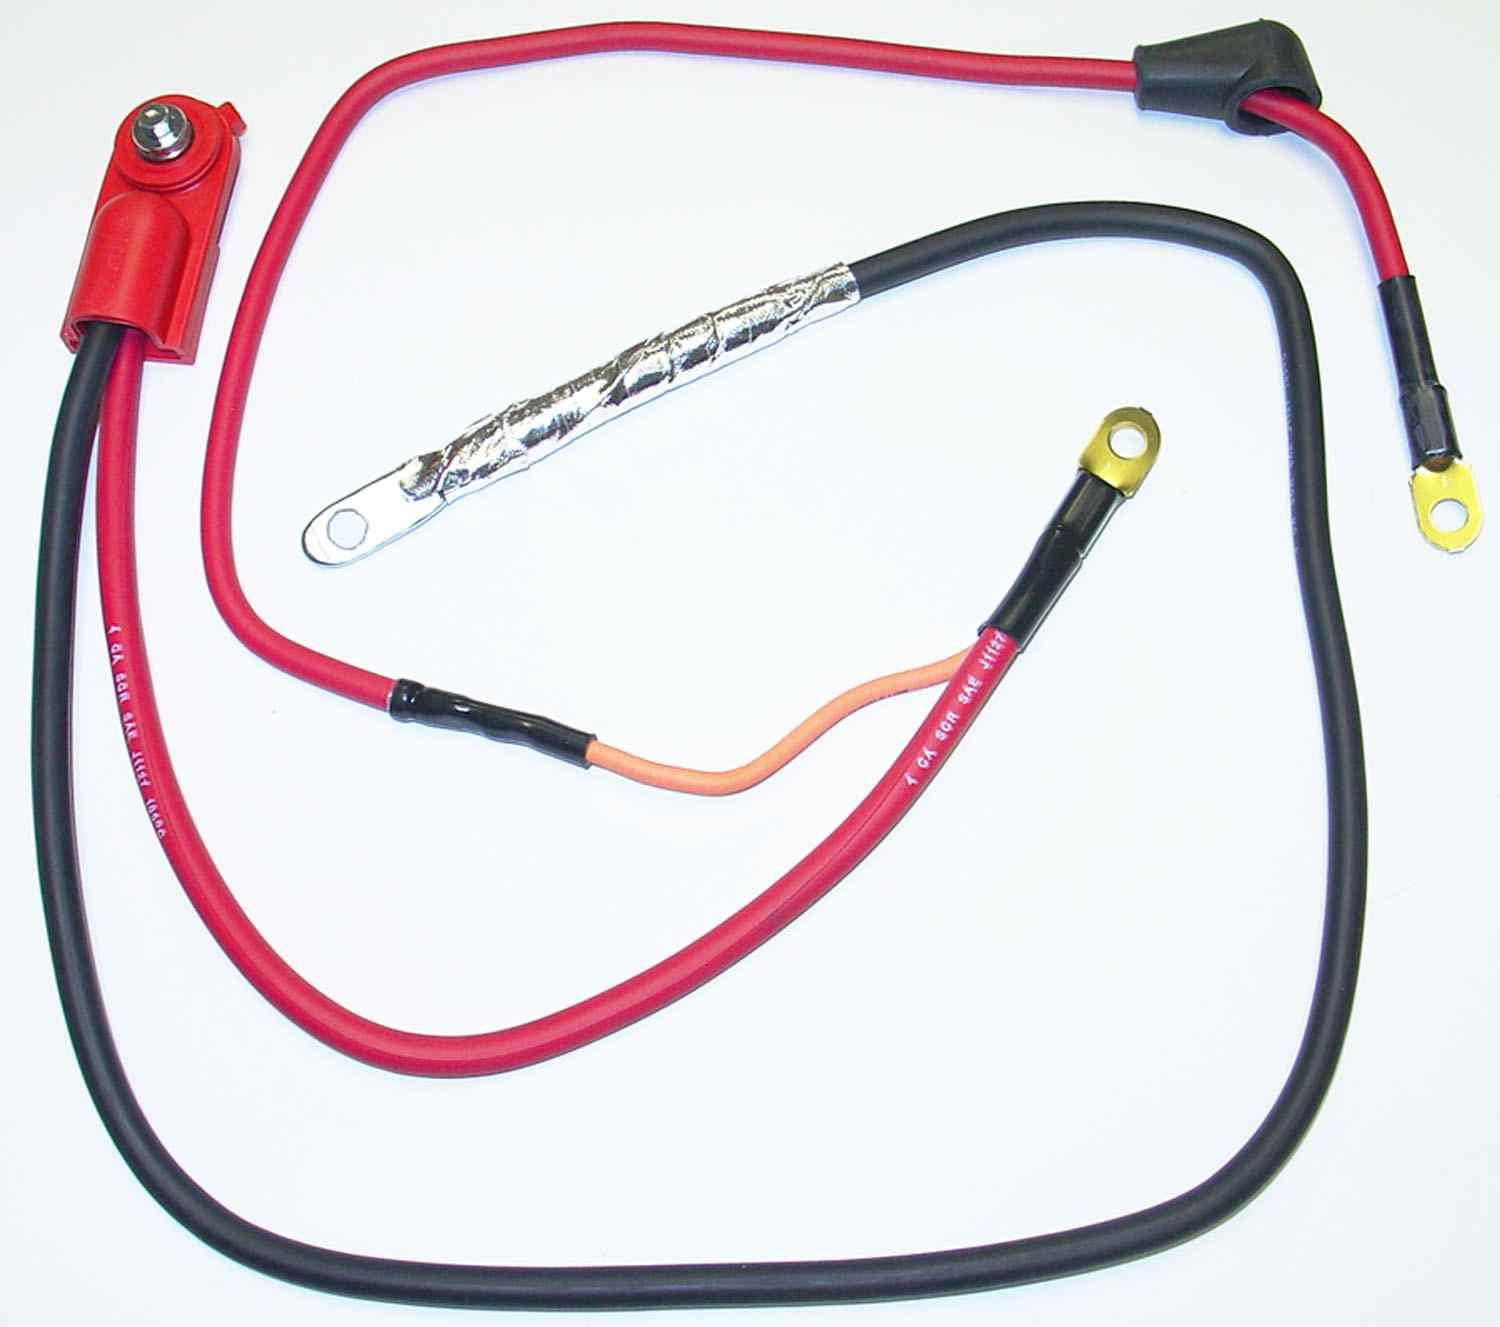 ACDELCO PROFESSIONAL - Battery Cable - DCC 4SD41XT